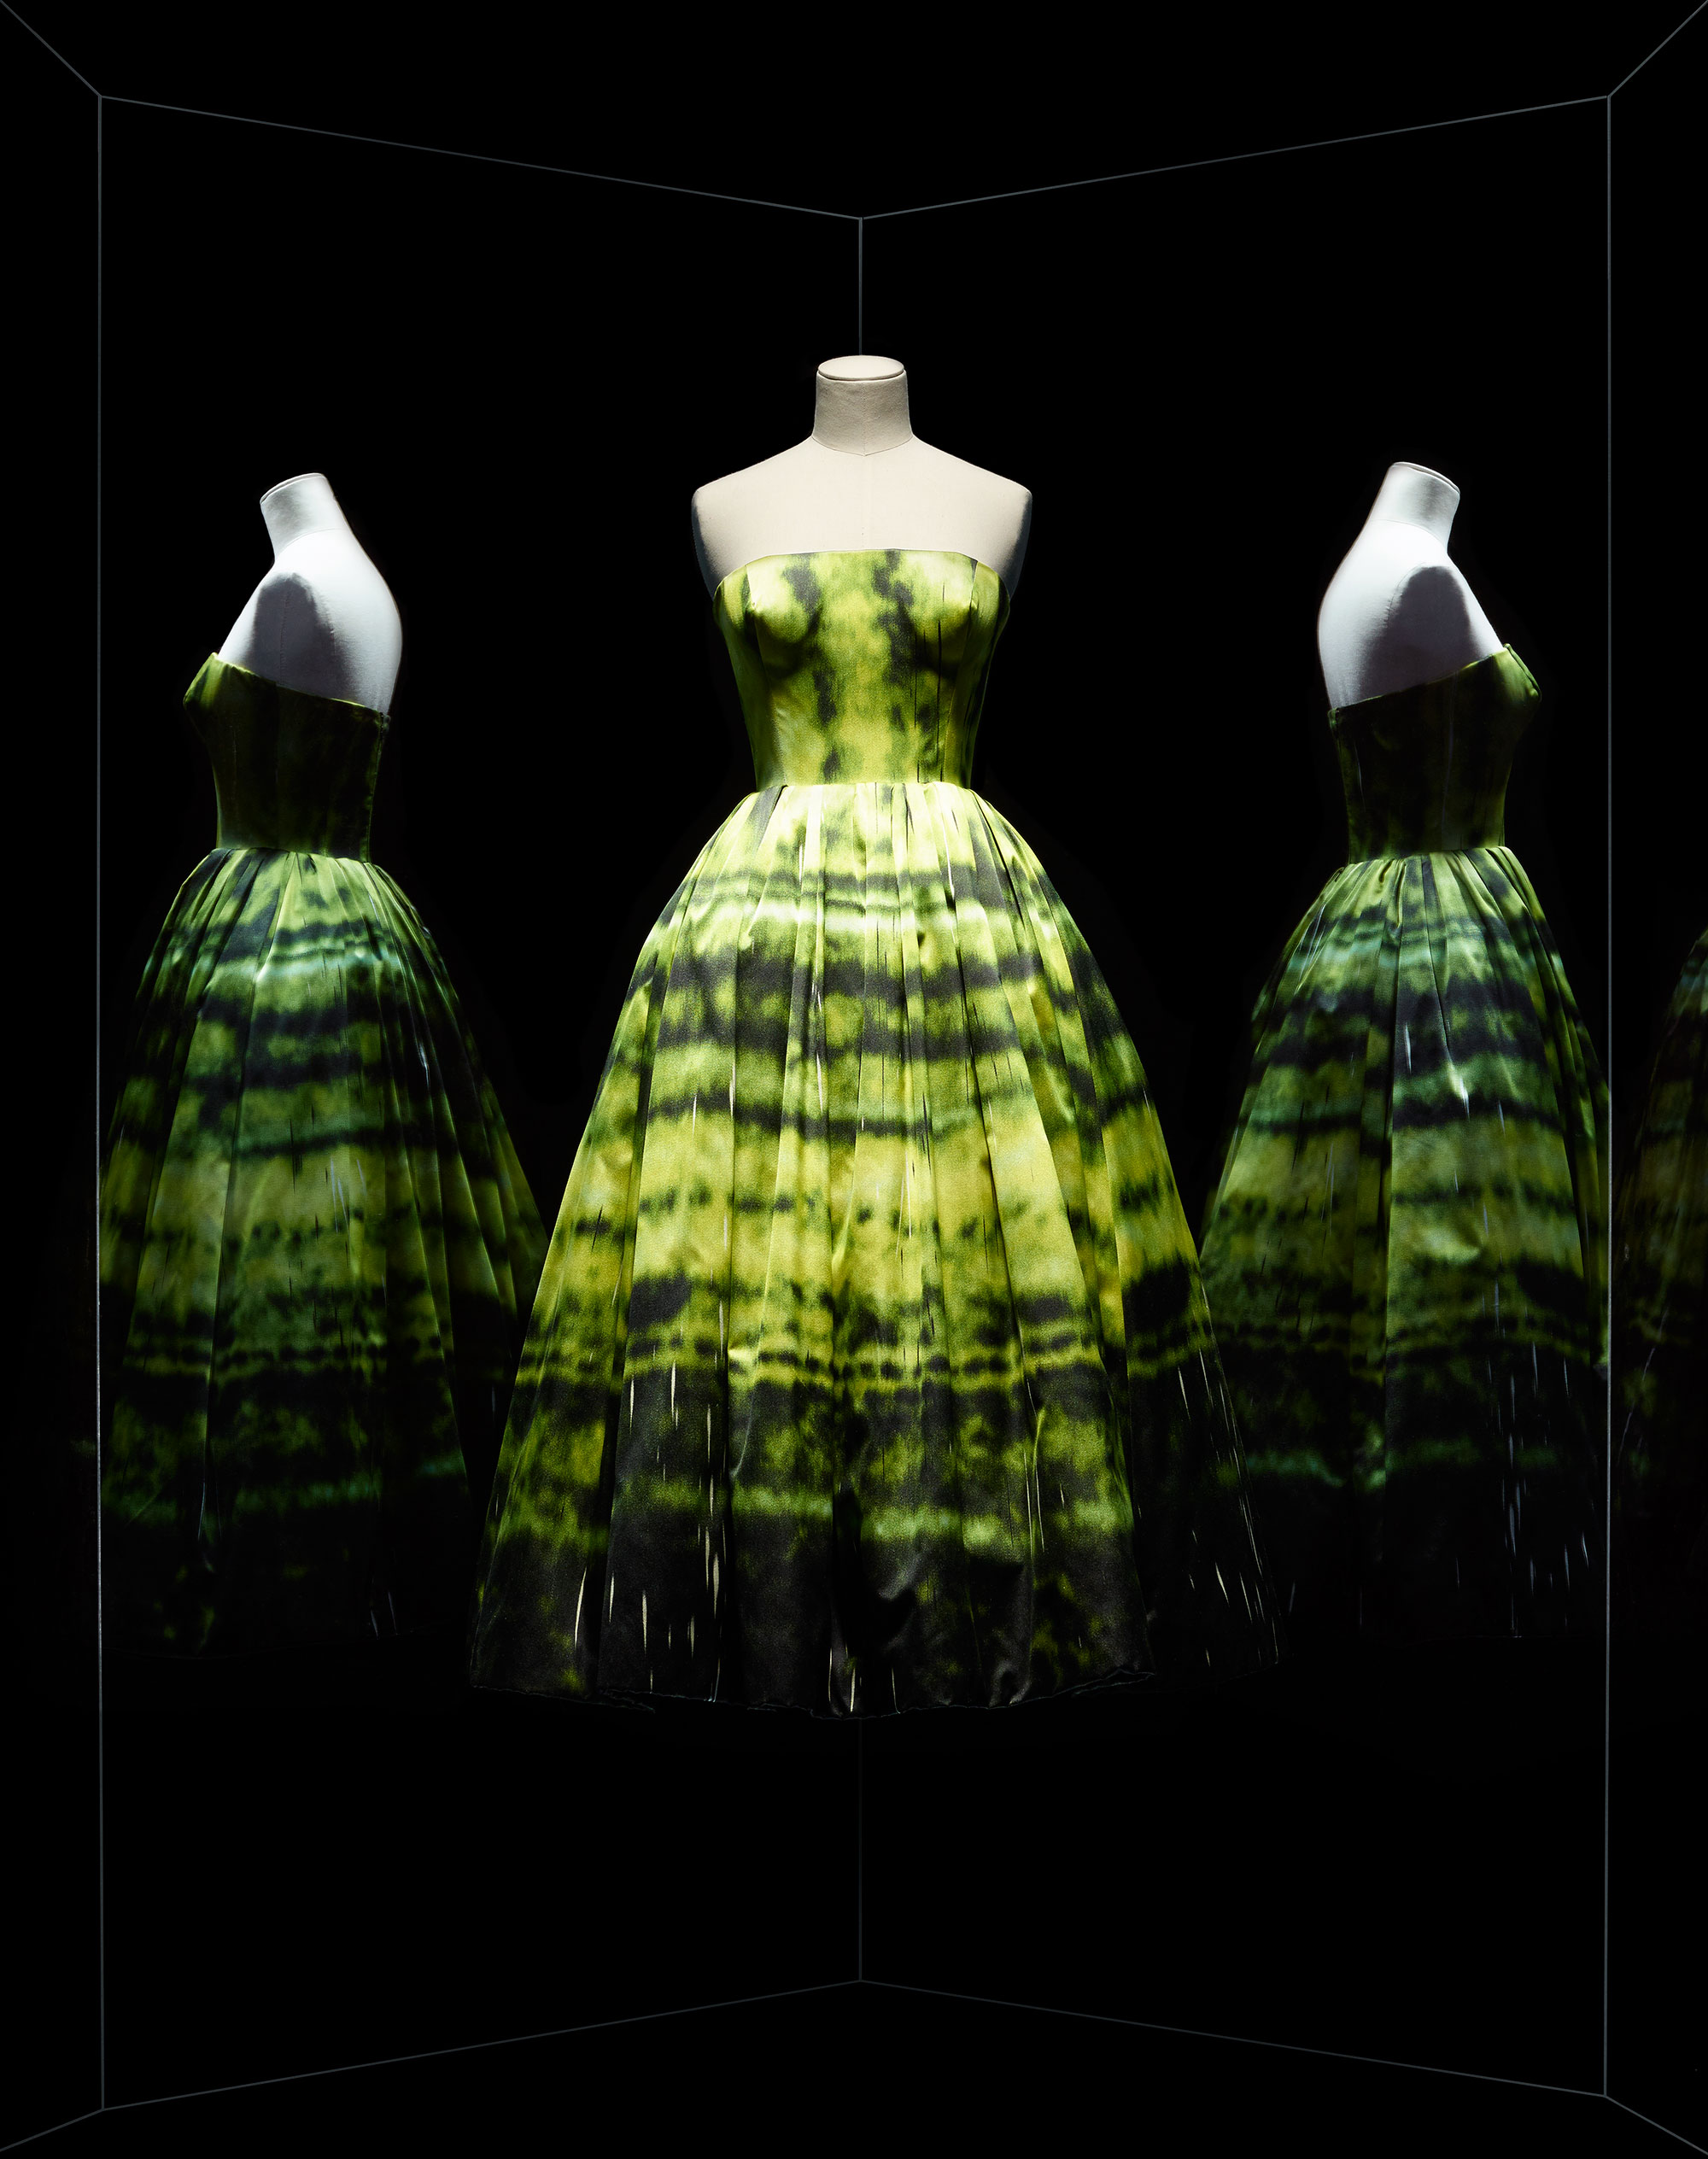 70th Anniversary of the House of Dior at the Musée des Arts Decoratifs - museum fashion exhibitions, fashion exhibit